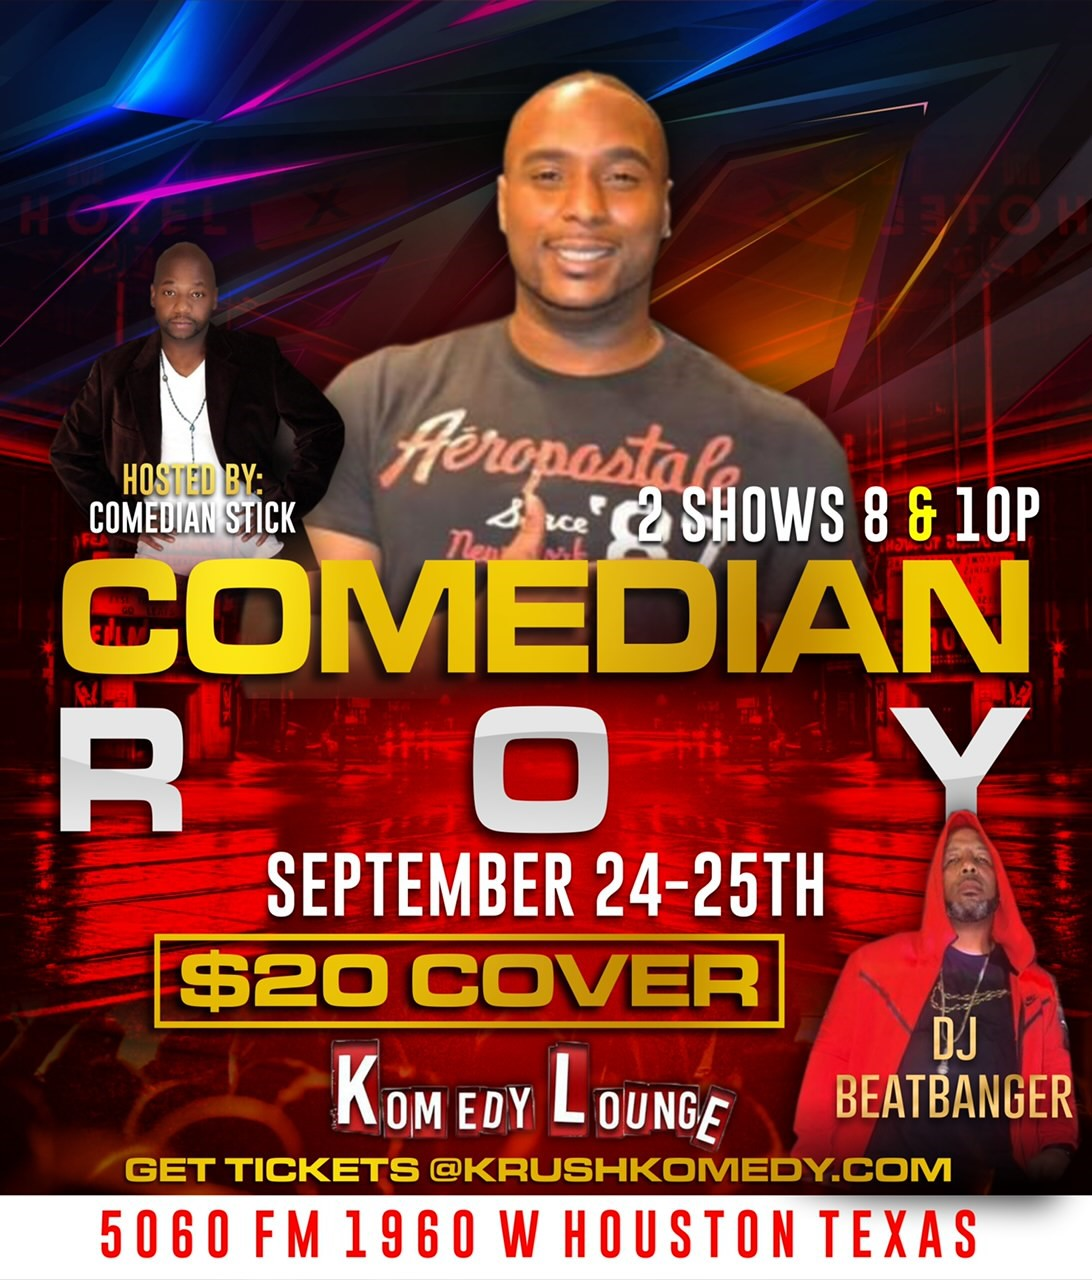 Comedian Roy 8pm  on Sep 24, 20:00@Komedy Lounge - Buy tickets and Get information on komedylounge.com